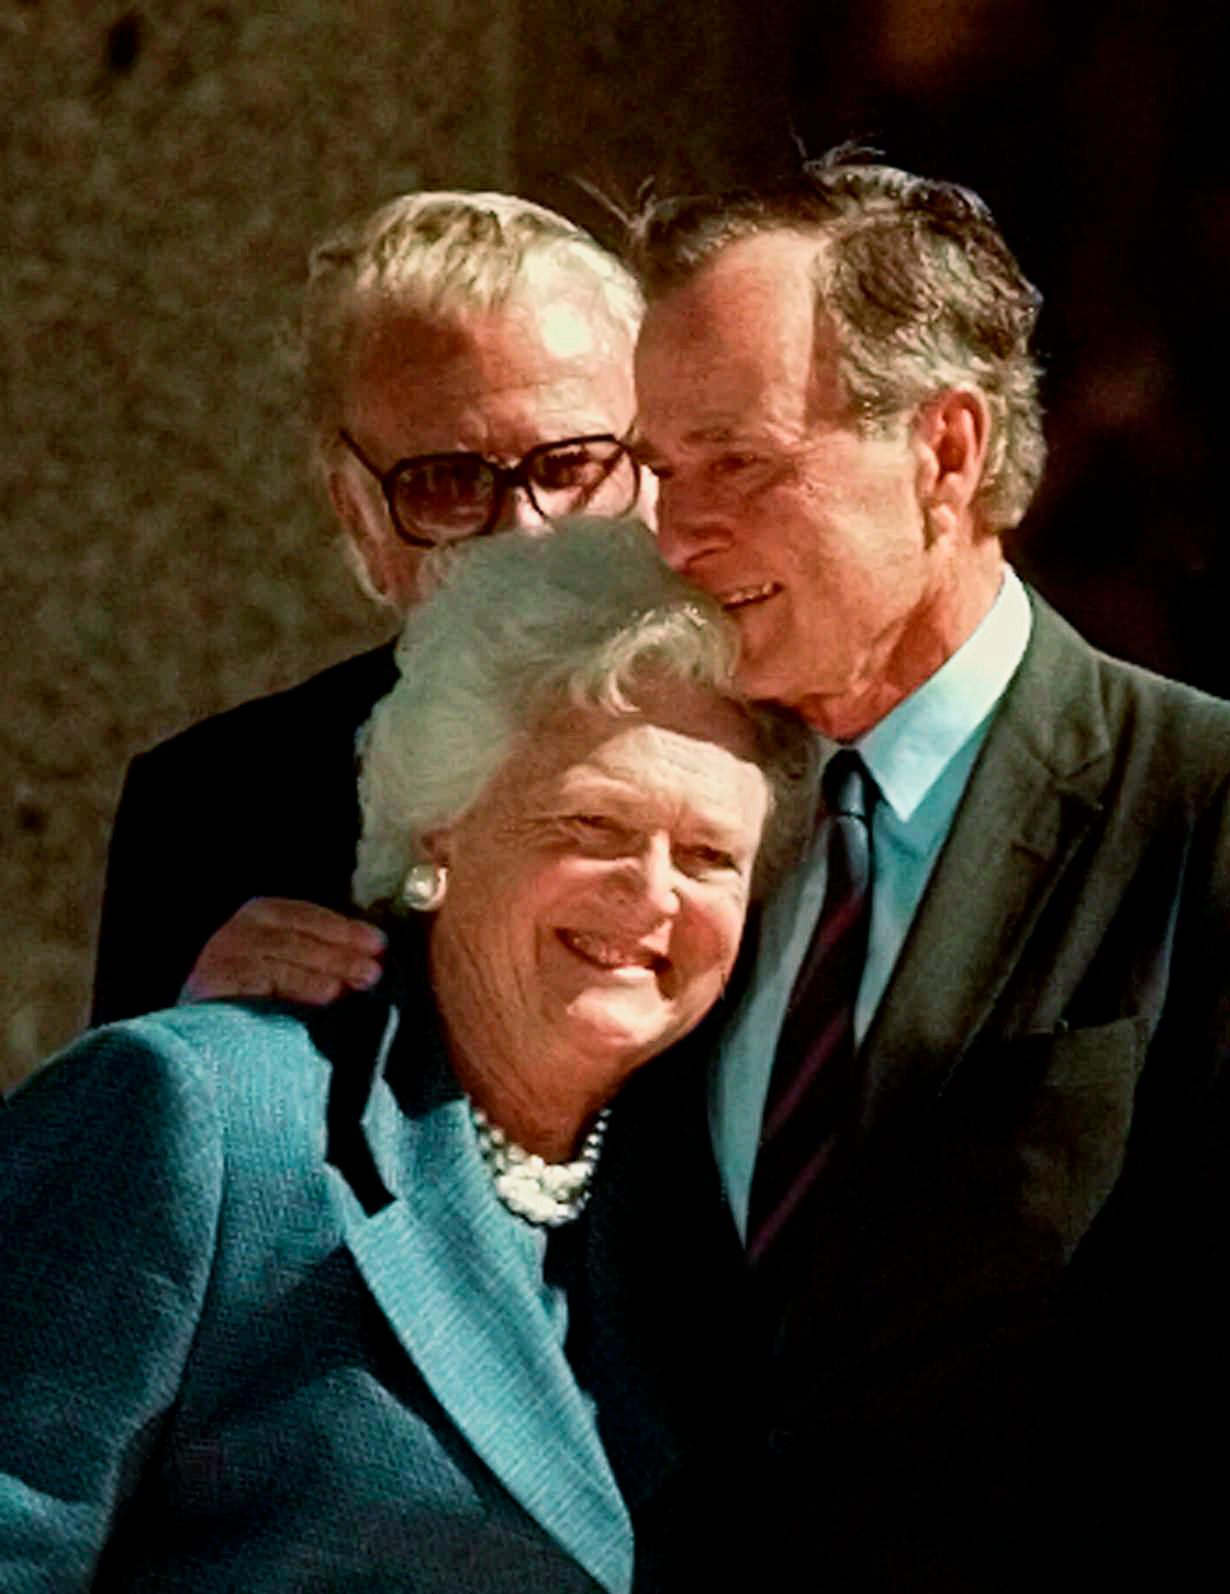 "FILE - In this Nov. 6, 1997, file photo, former President George Bush hugs his wife, Barbara, after his address during the dedication of the George Bush Presidential Library in College Station, Texas. With her husband still at her side, Barbara Bush has decided to decline further medical treatment for health problems and focus instead on ""comfort care"" at their home in Houston. Family spokesman Jim McGrath disclosed Barbara Bush's decision Sunday, April 15, 2018. (AP Photo/Pat Sullivan, File)"